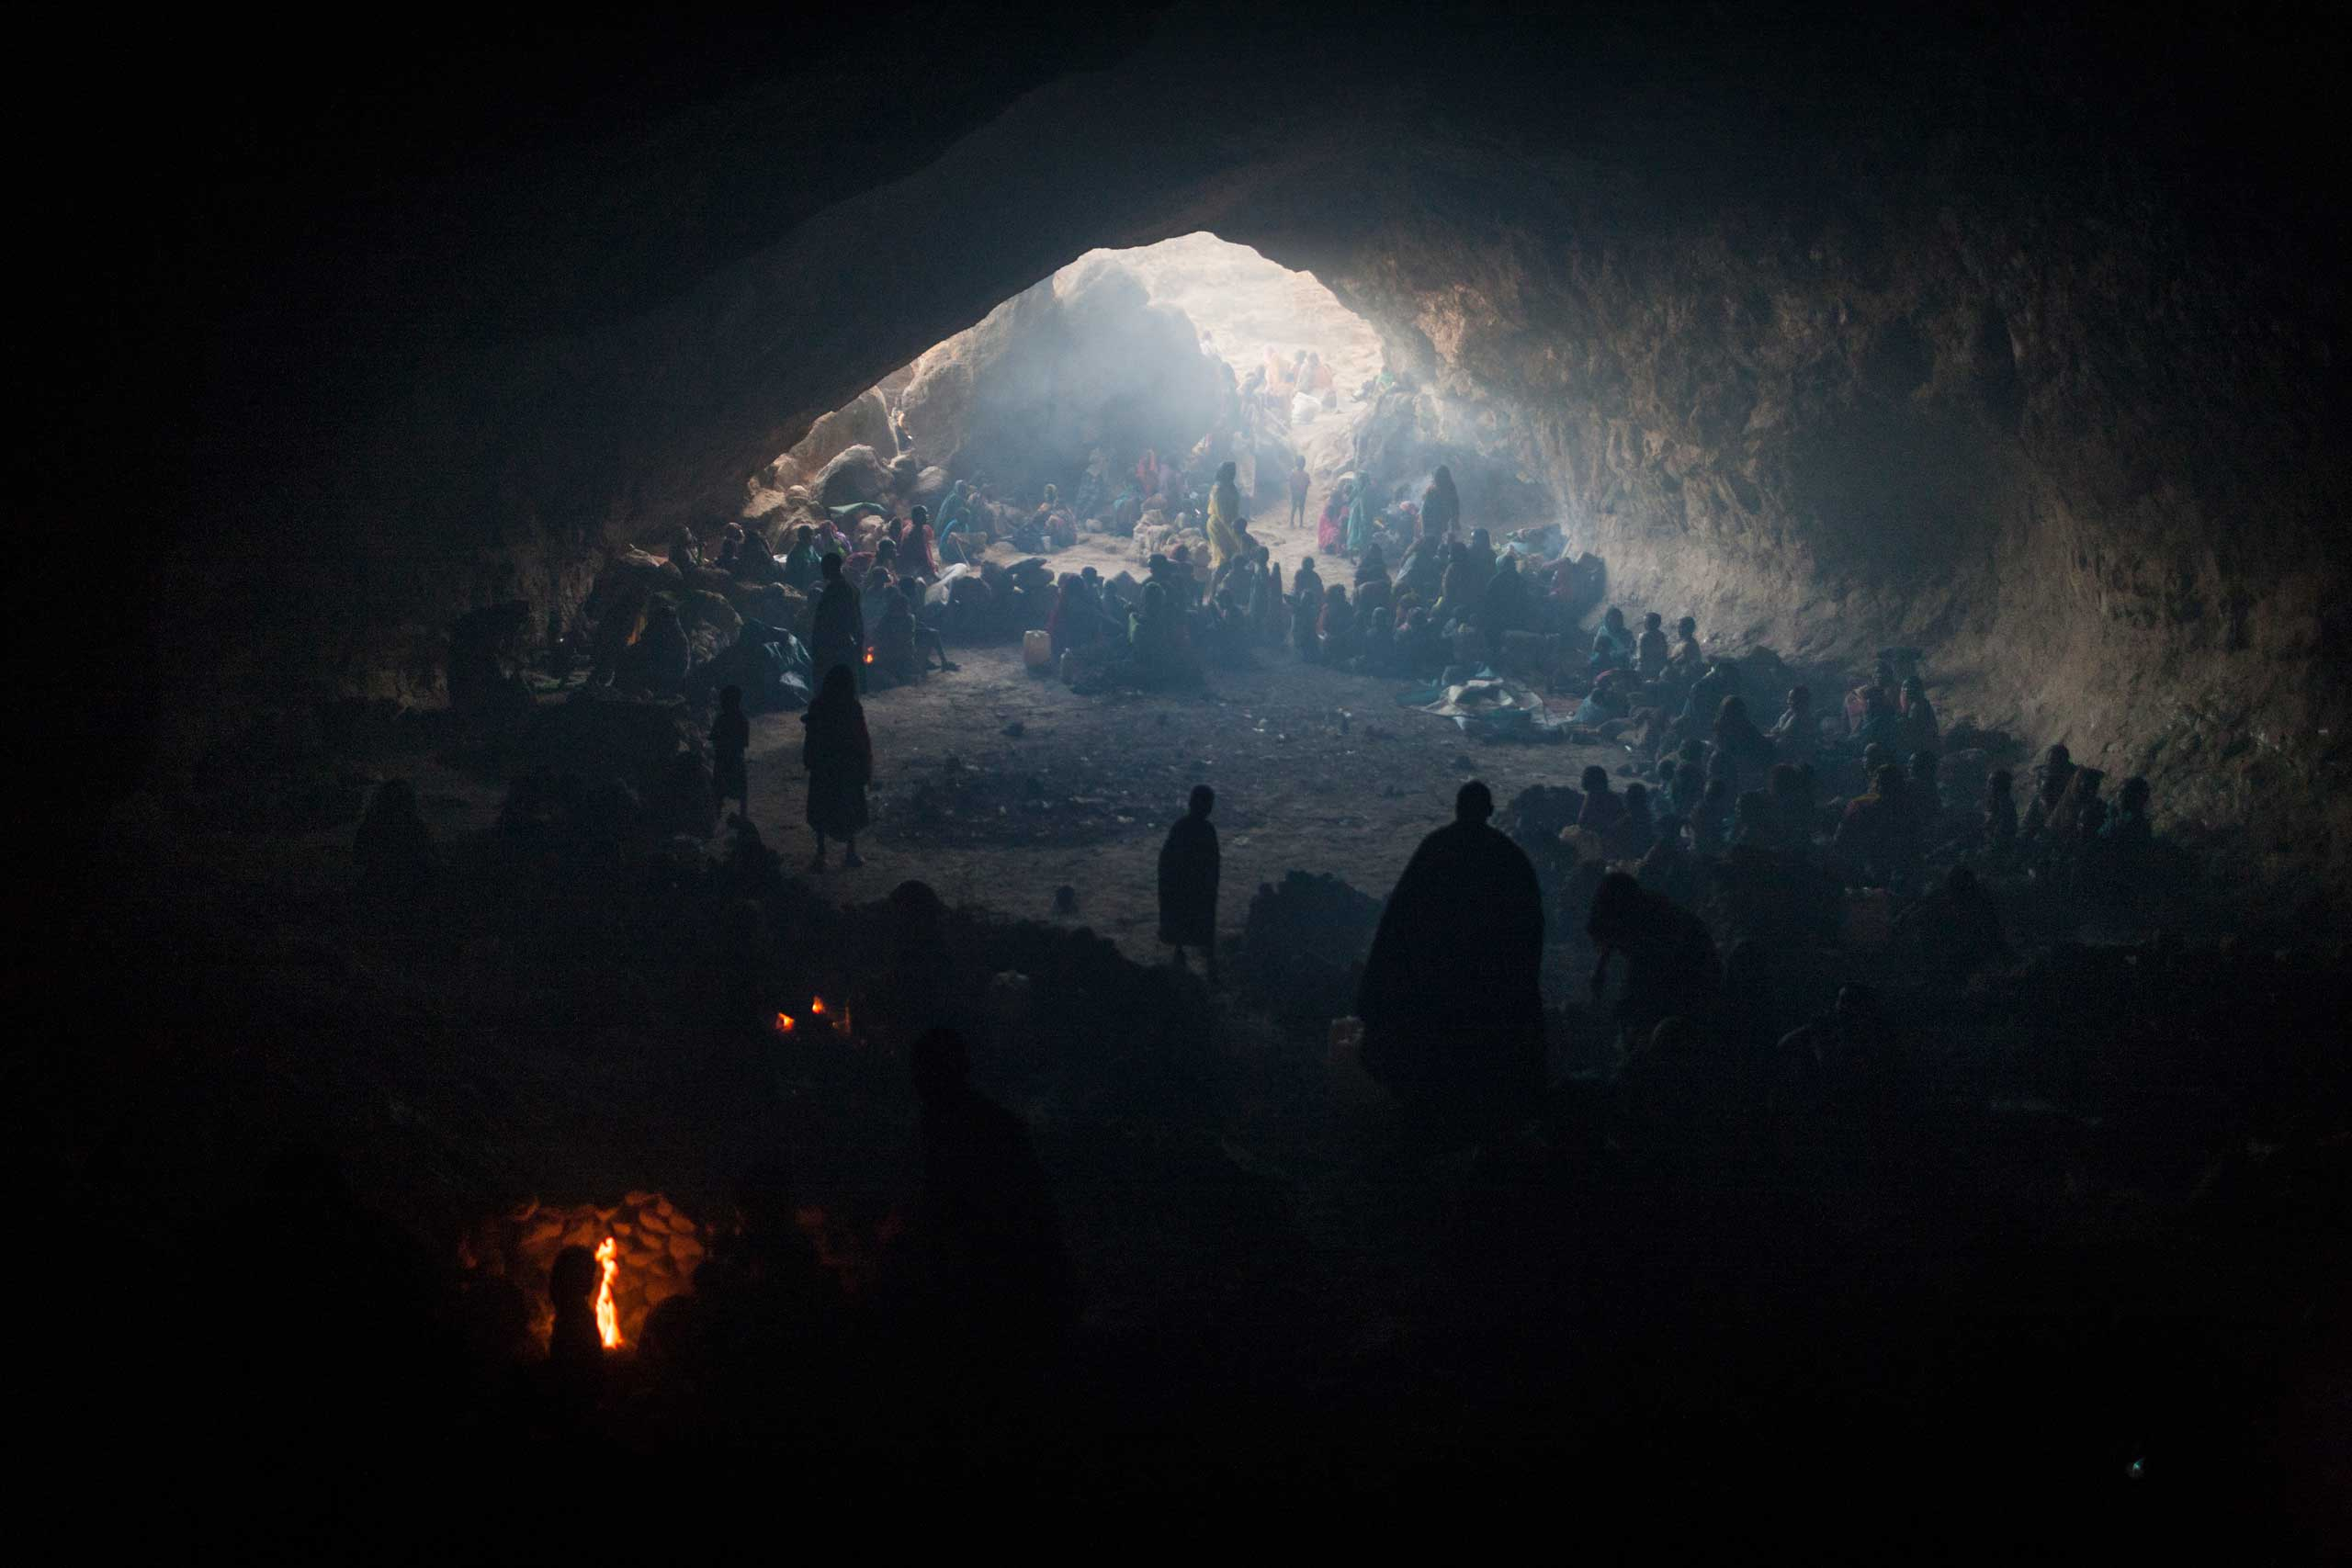 TIME LightBox: Inside Sudan's War-Torn Darfur                               Hundreds of women and children seek shelter in a cave from the bombing by government forces outside of the town of Sarong in Central Darfur, Sudan, March 2, 2015.